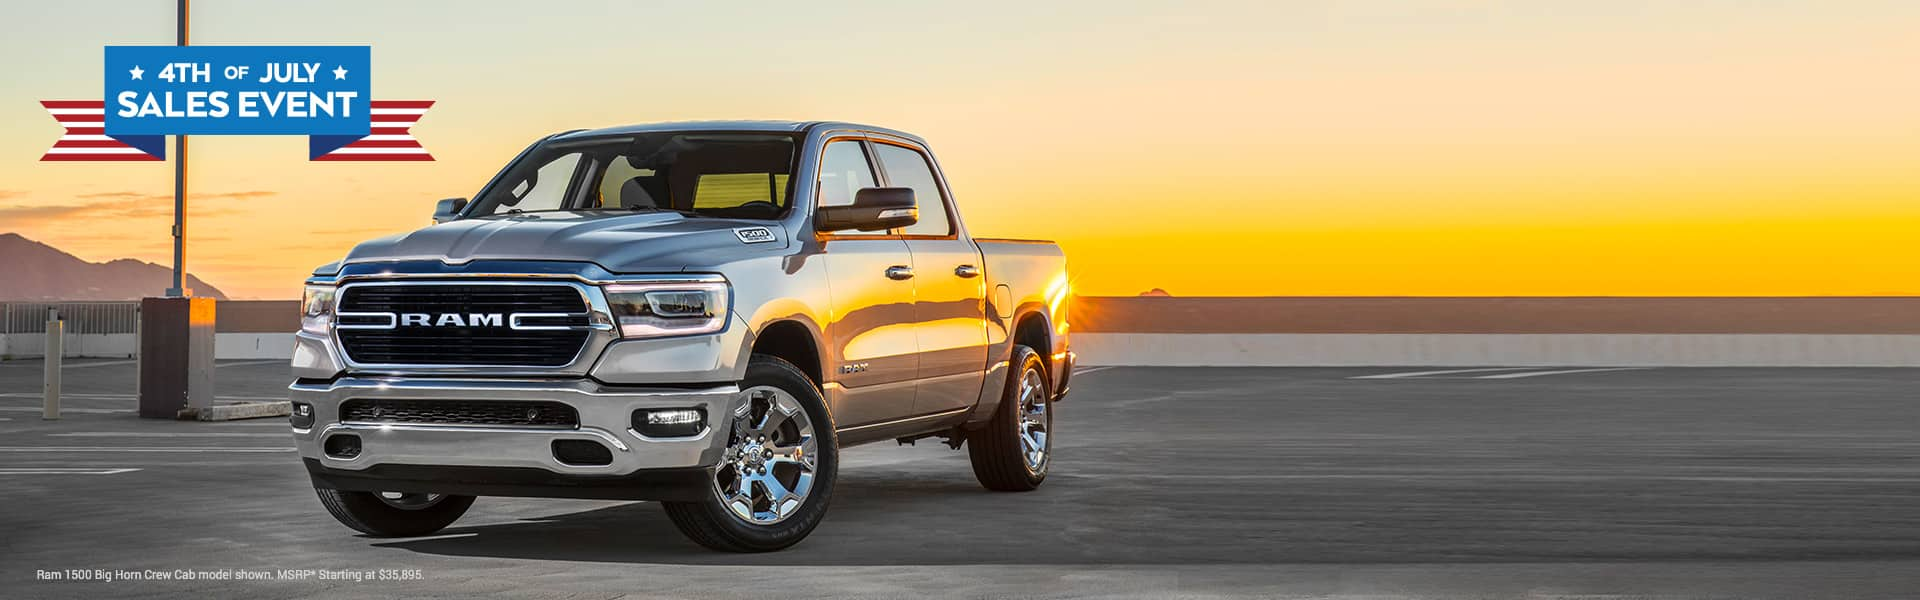 dodge laramie cars swap ram cargurus with discussion sb pic engine questions on